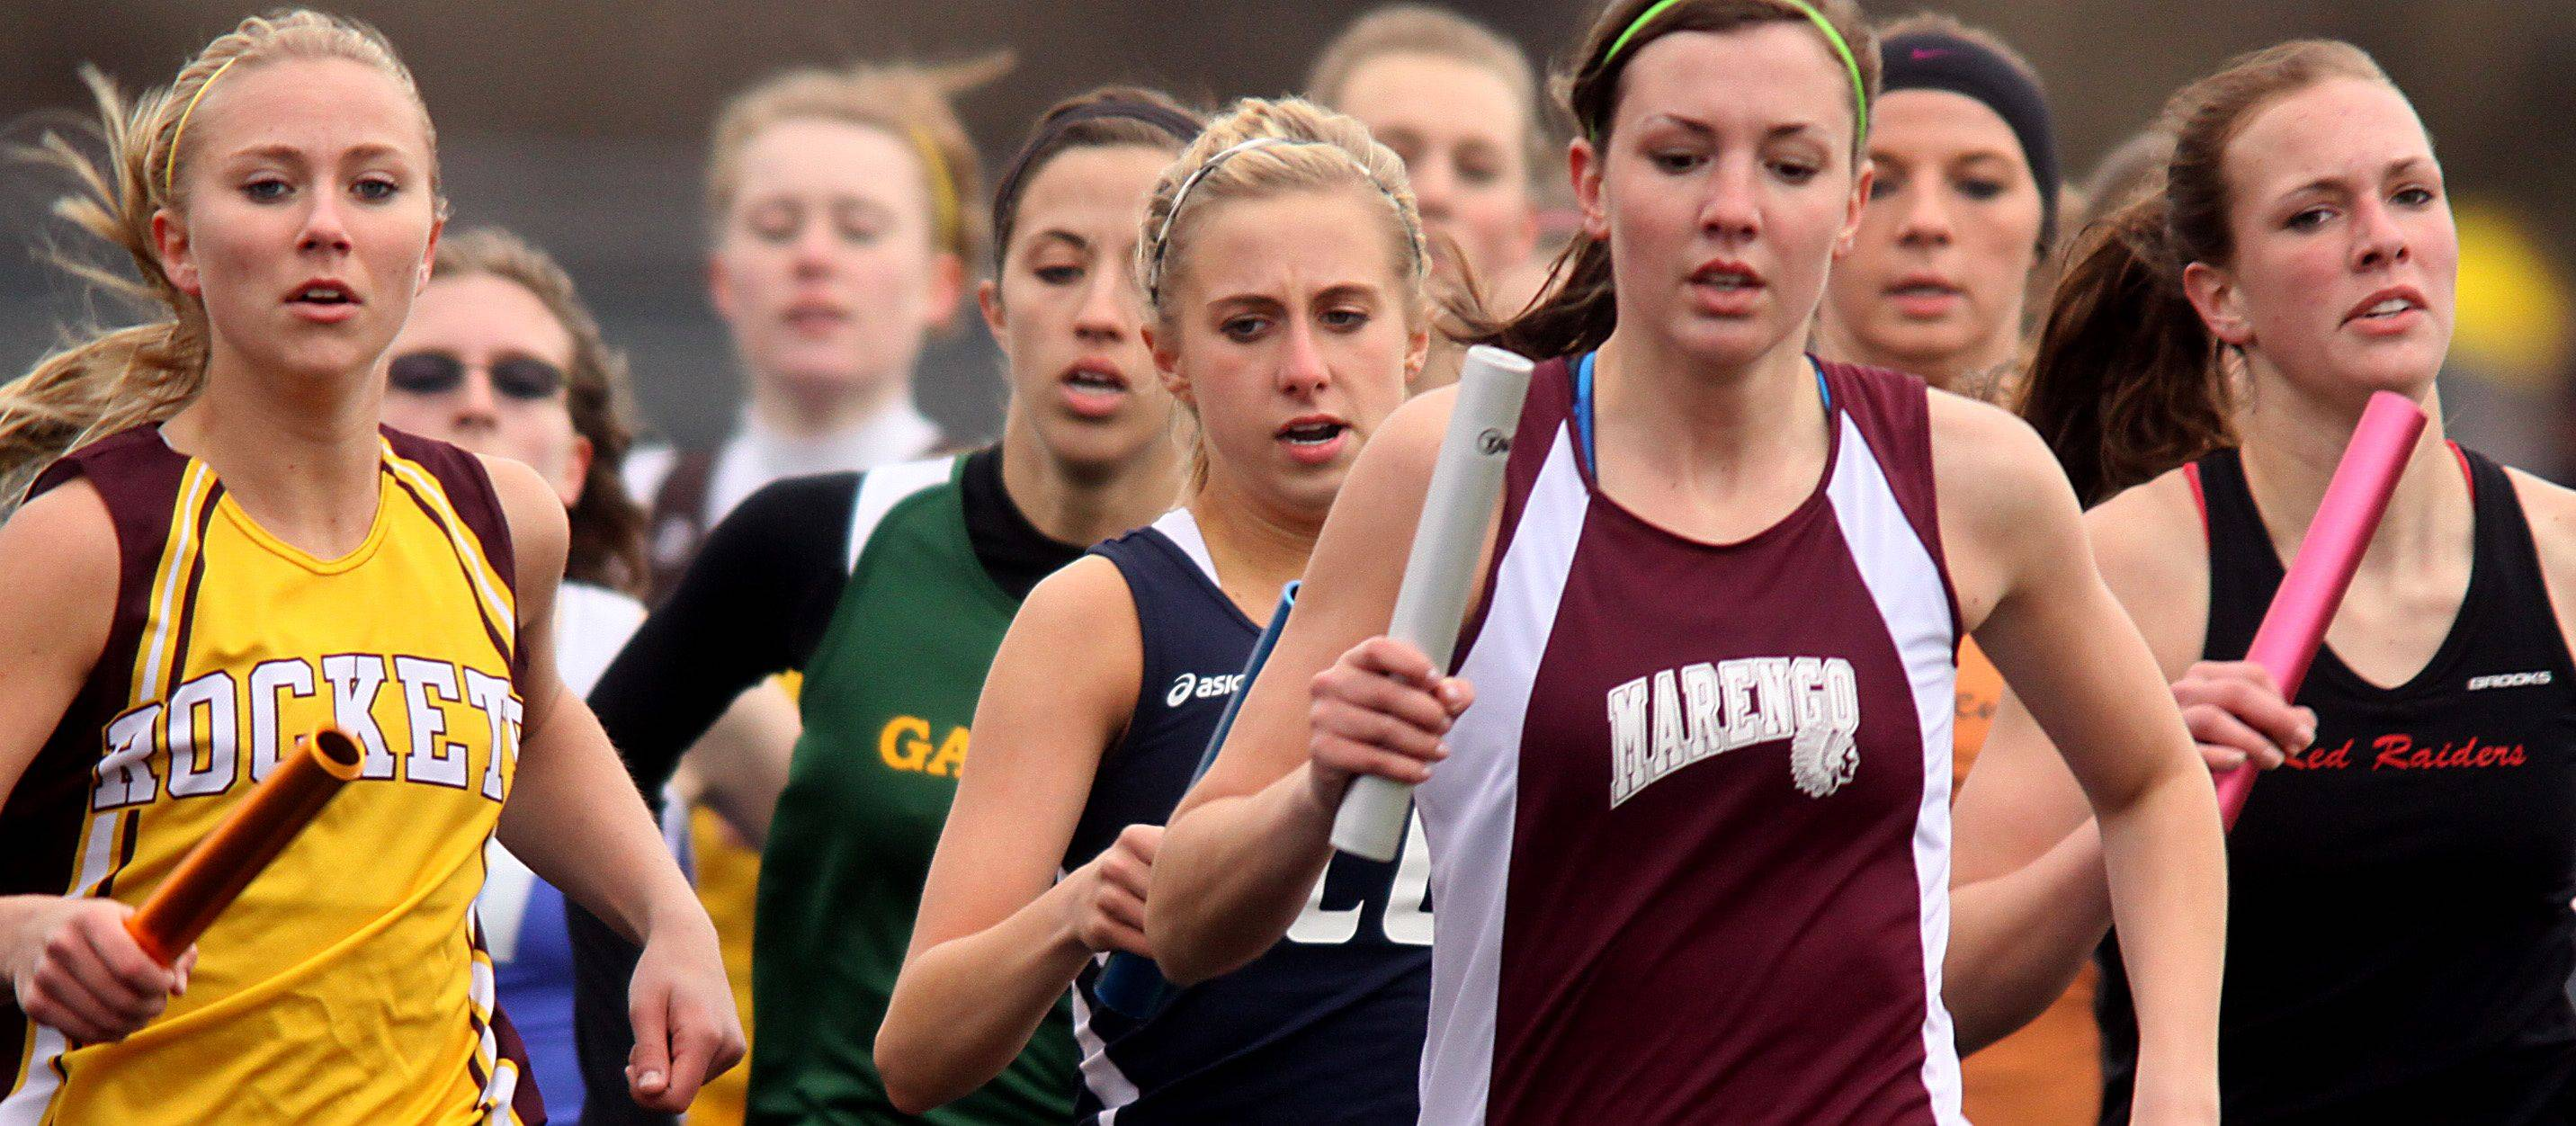 The first runners for each team complete their first lap of the 3200-meter relay during the McHenry County Track Meet at Al Bohrer Field on the campus of Cary-Grove High School Thursday evening.